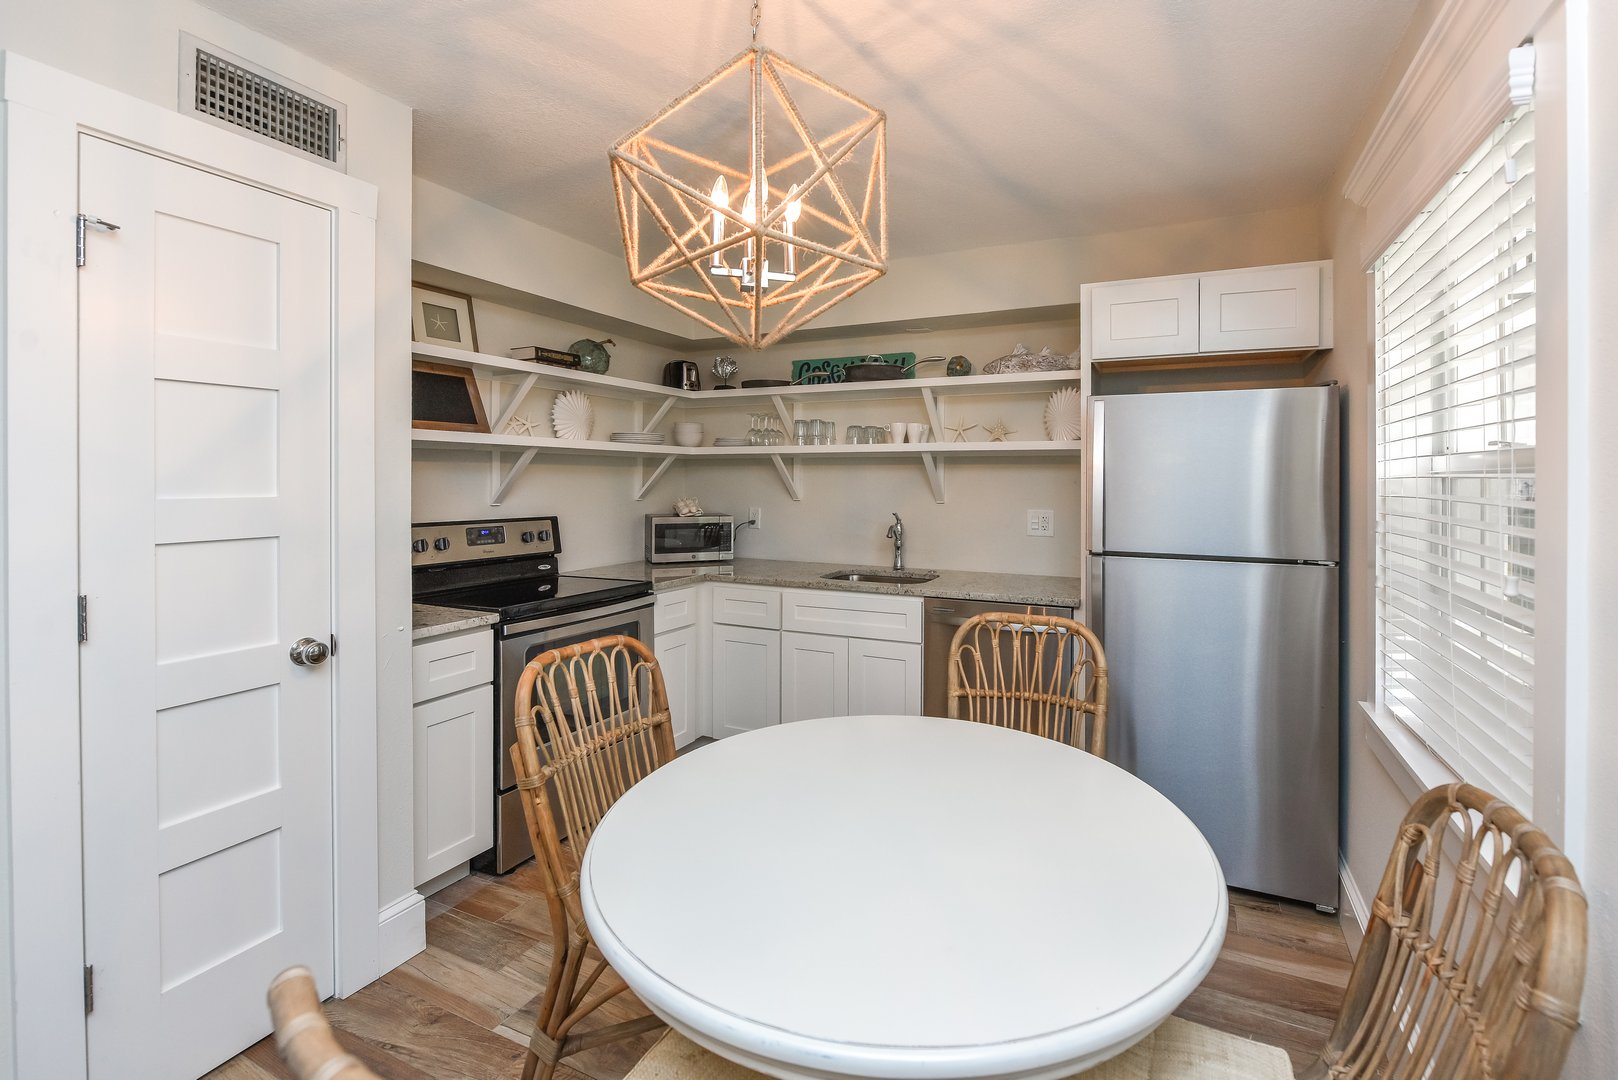 Eat In Kitchen Space for 4